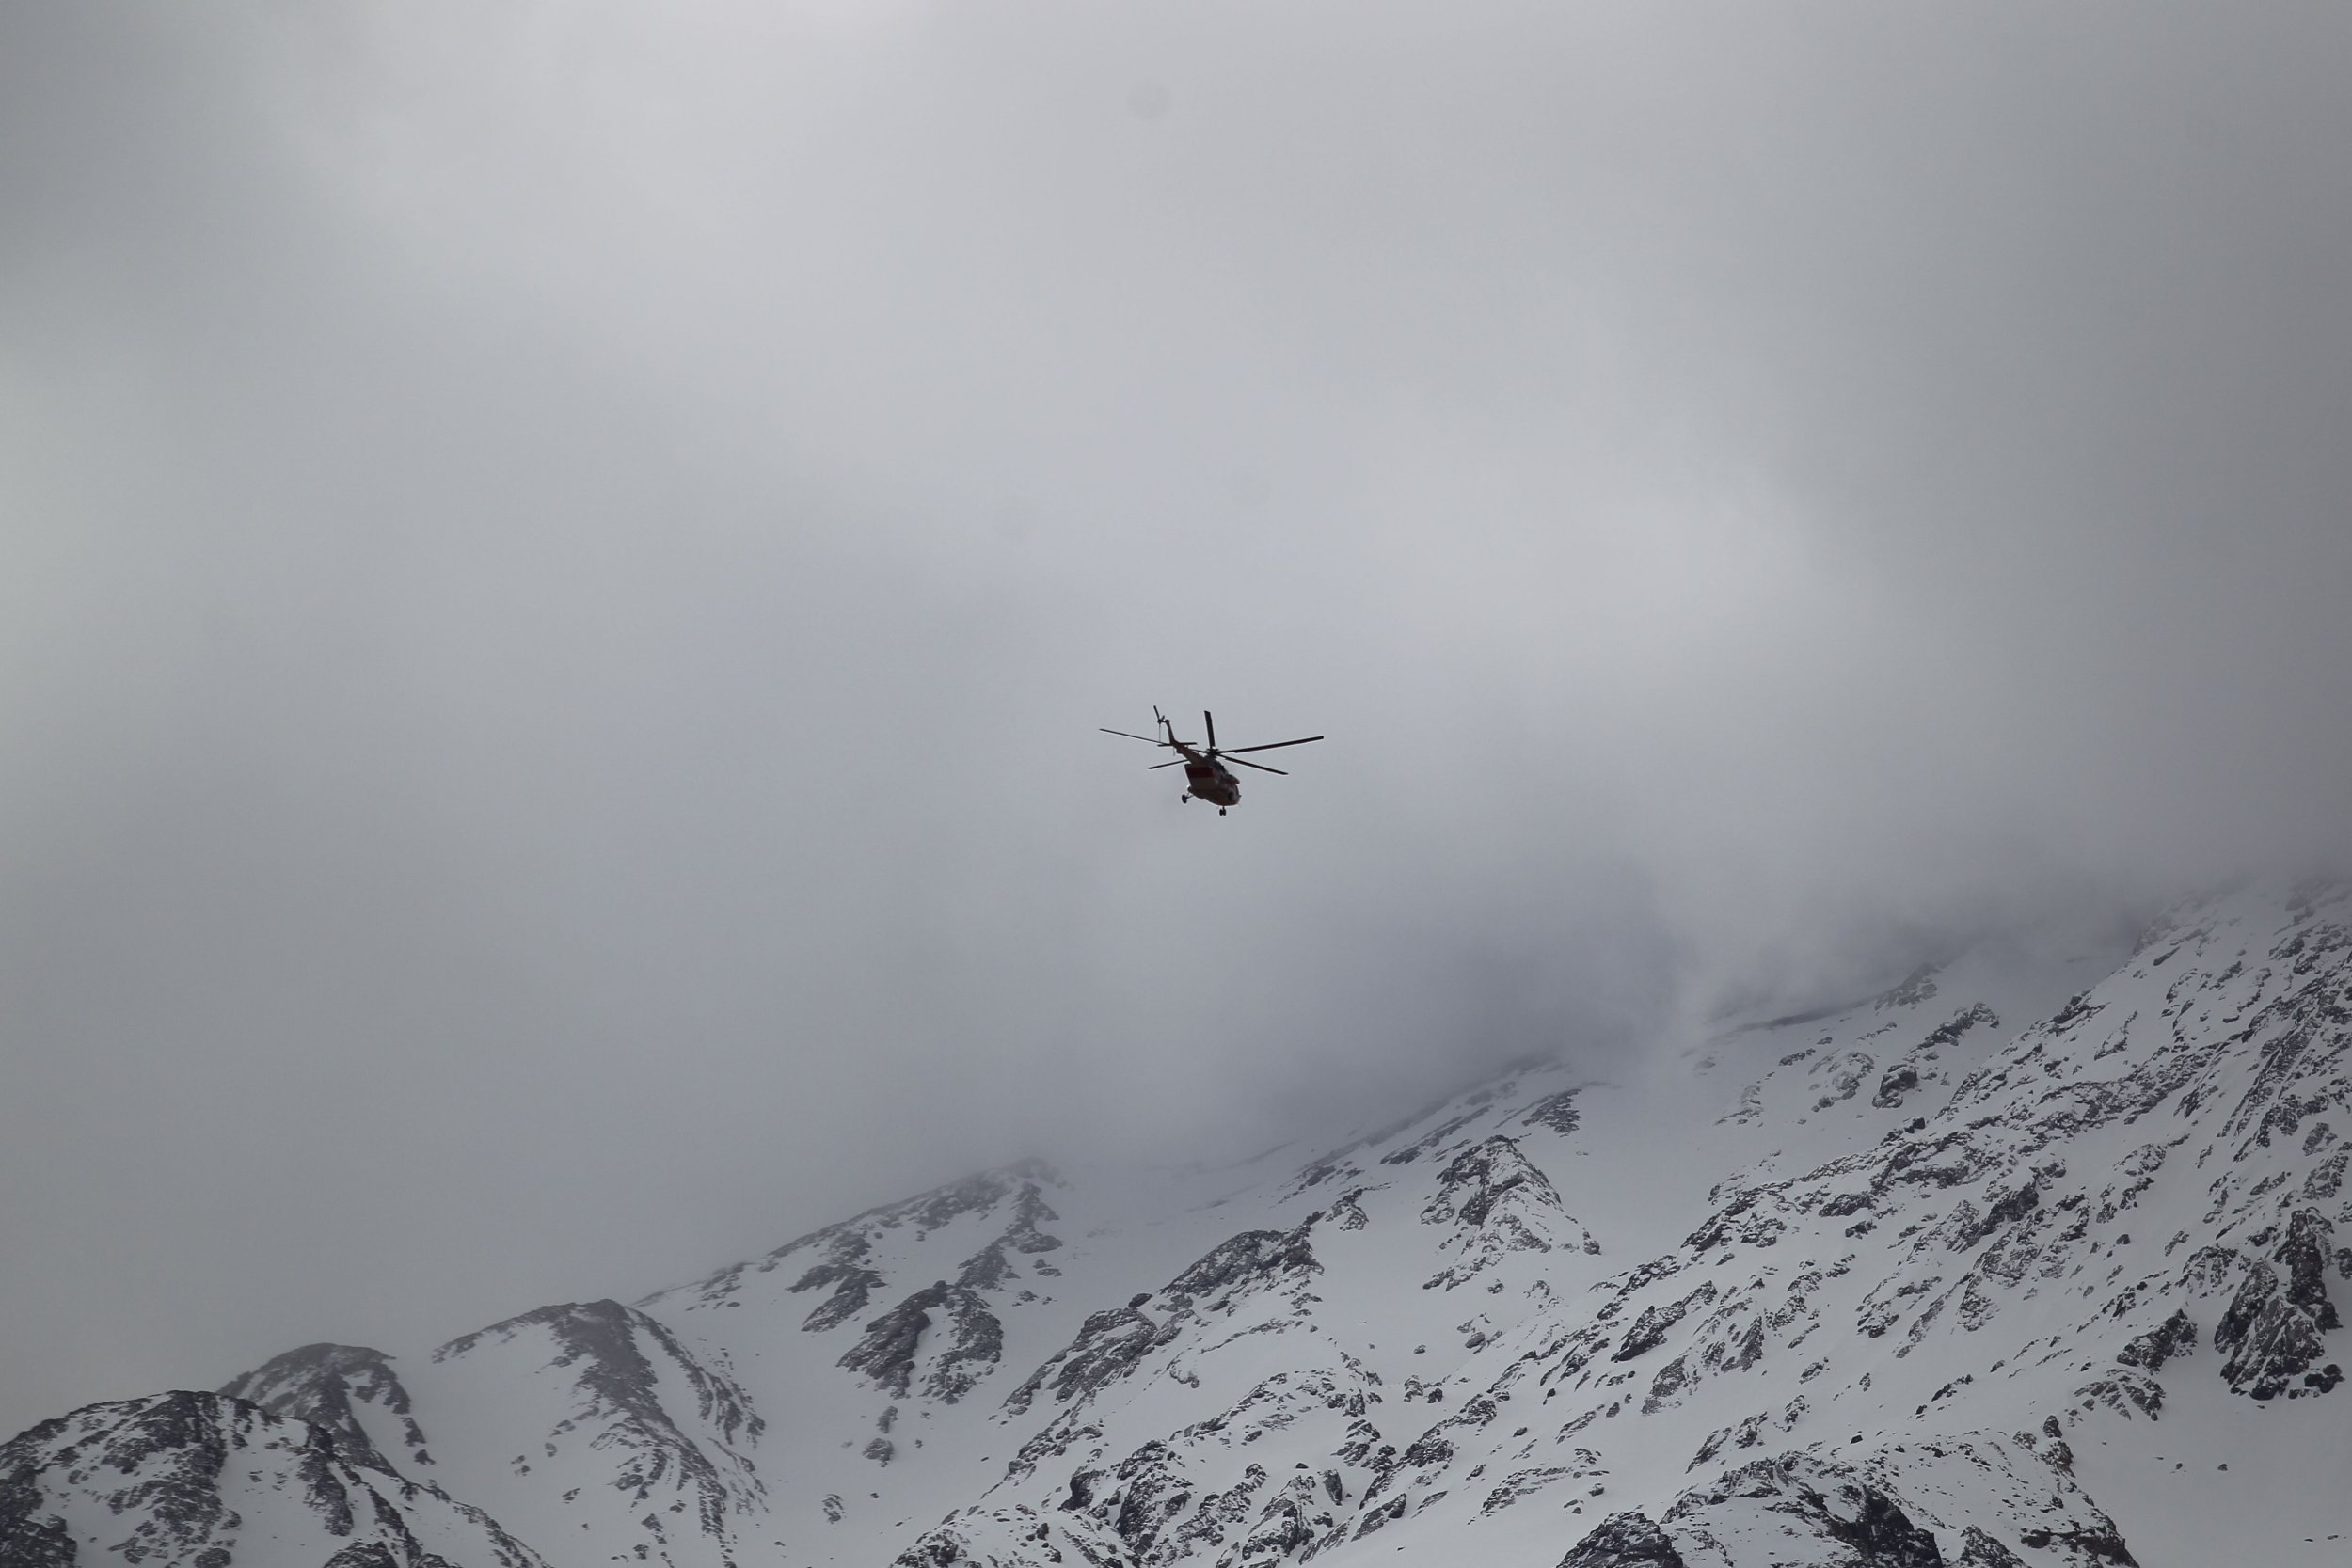 Iranian helicopter searches for missing plane over mountains